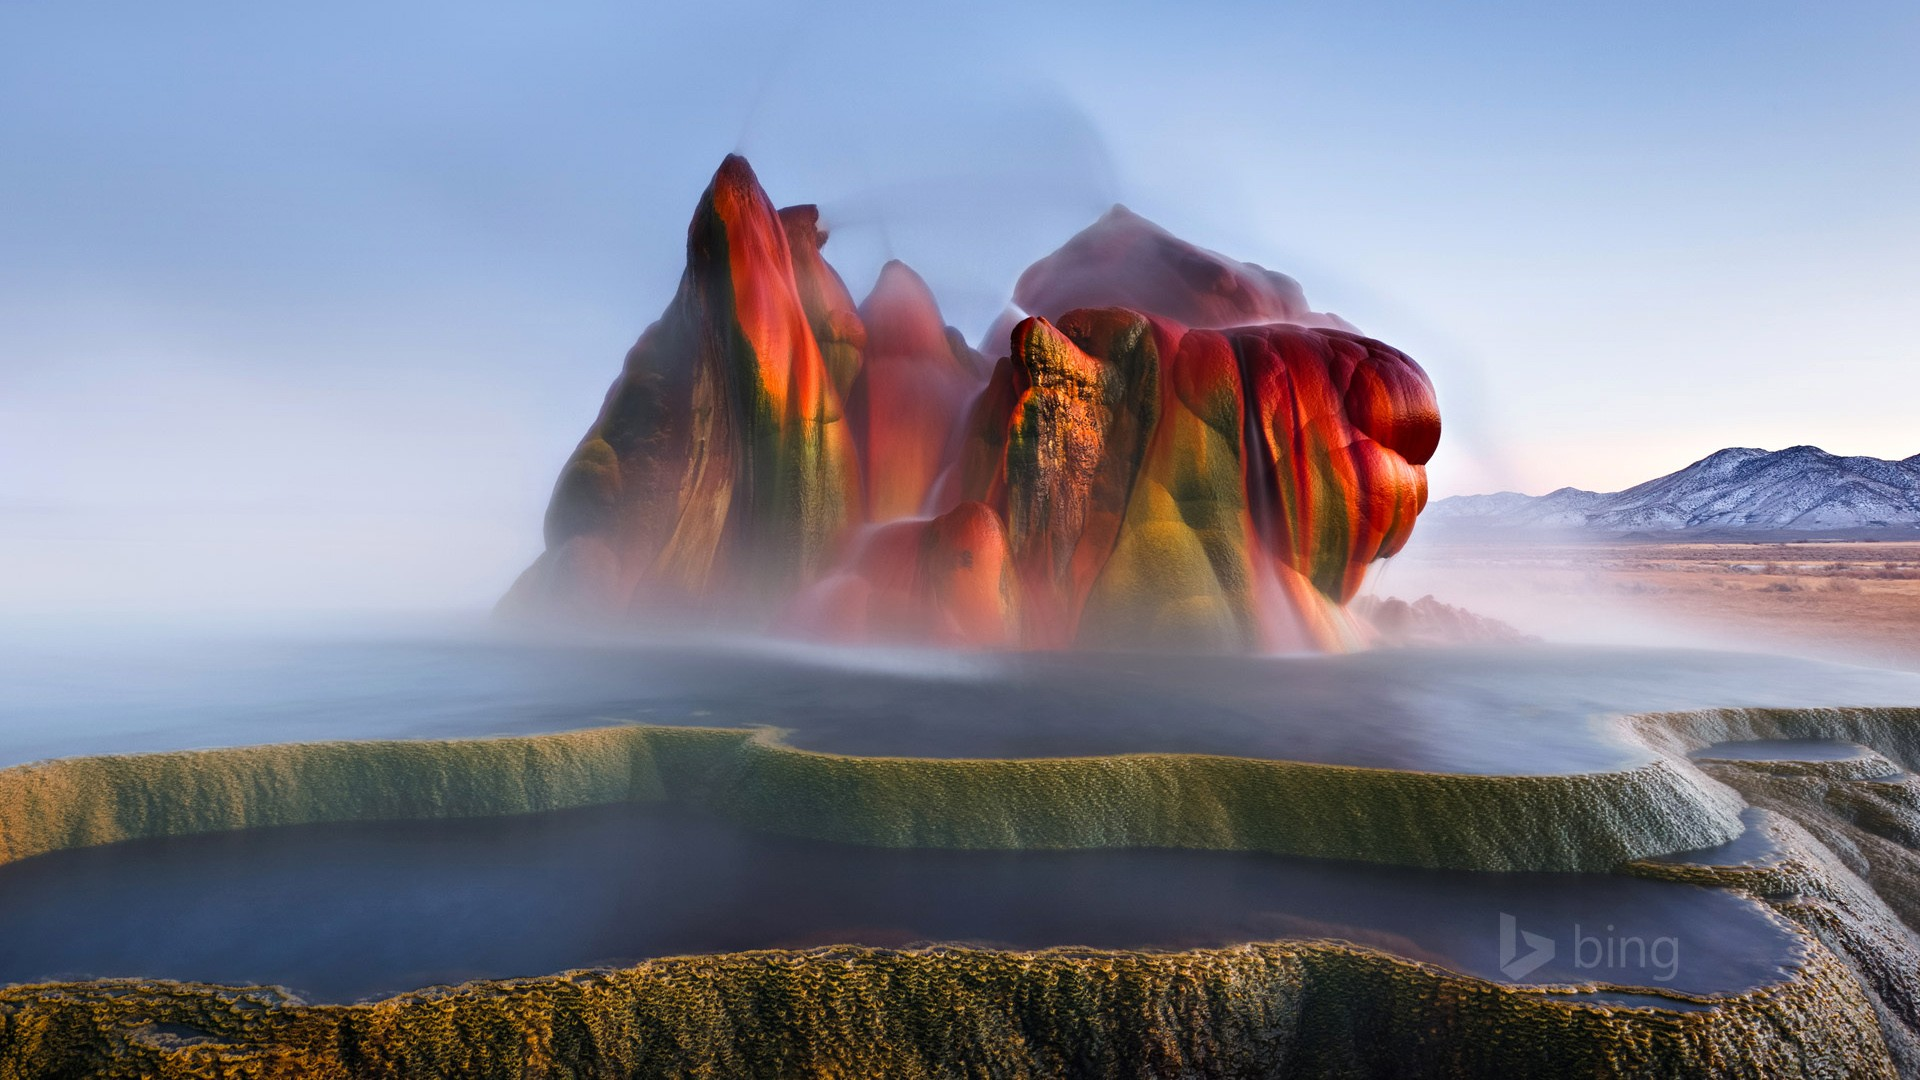 Top 10 3d Wallpapers For Desktop Fly Ranch Geyser Wallpapers Hd Wallpapers Id 13989